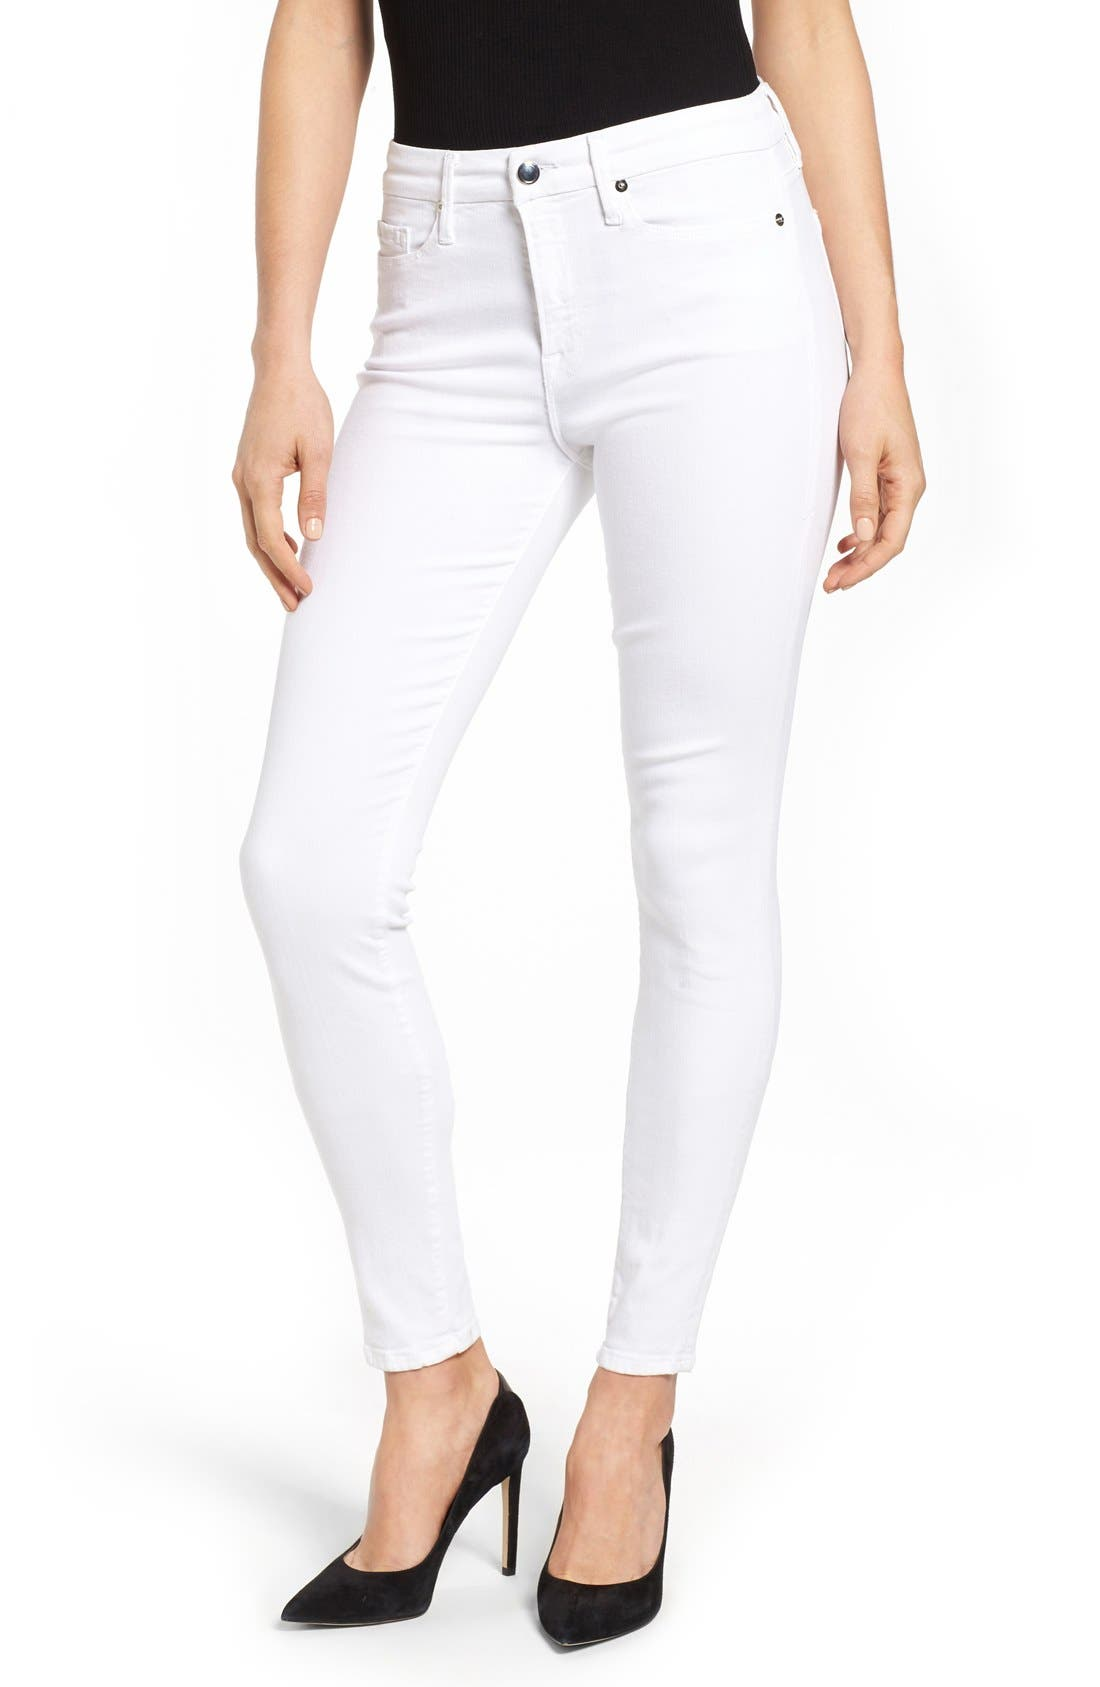 Main Image - Good American Good Legs High Rise Skinny Jeans (White 001) (Extended Sizes)